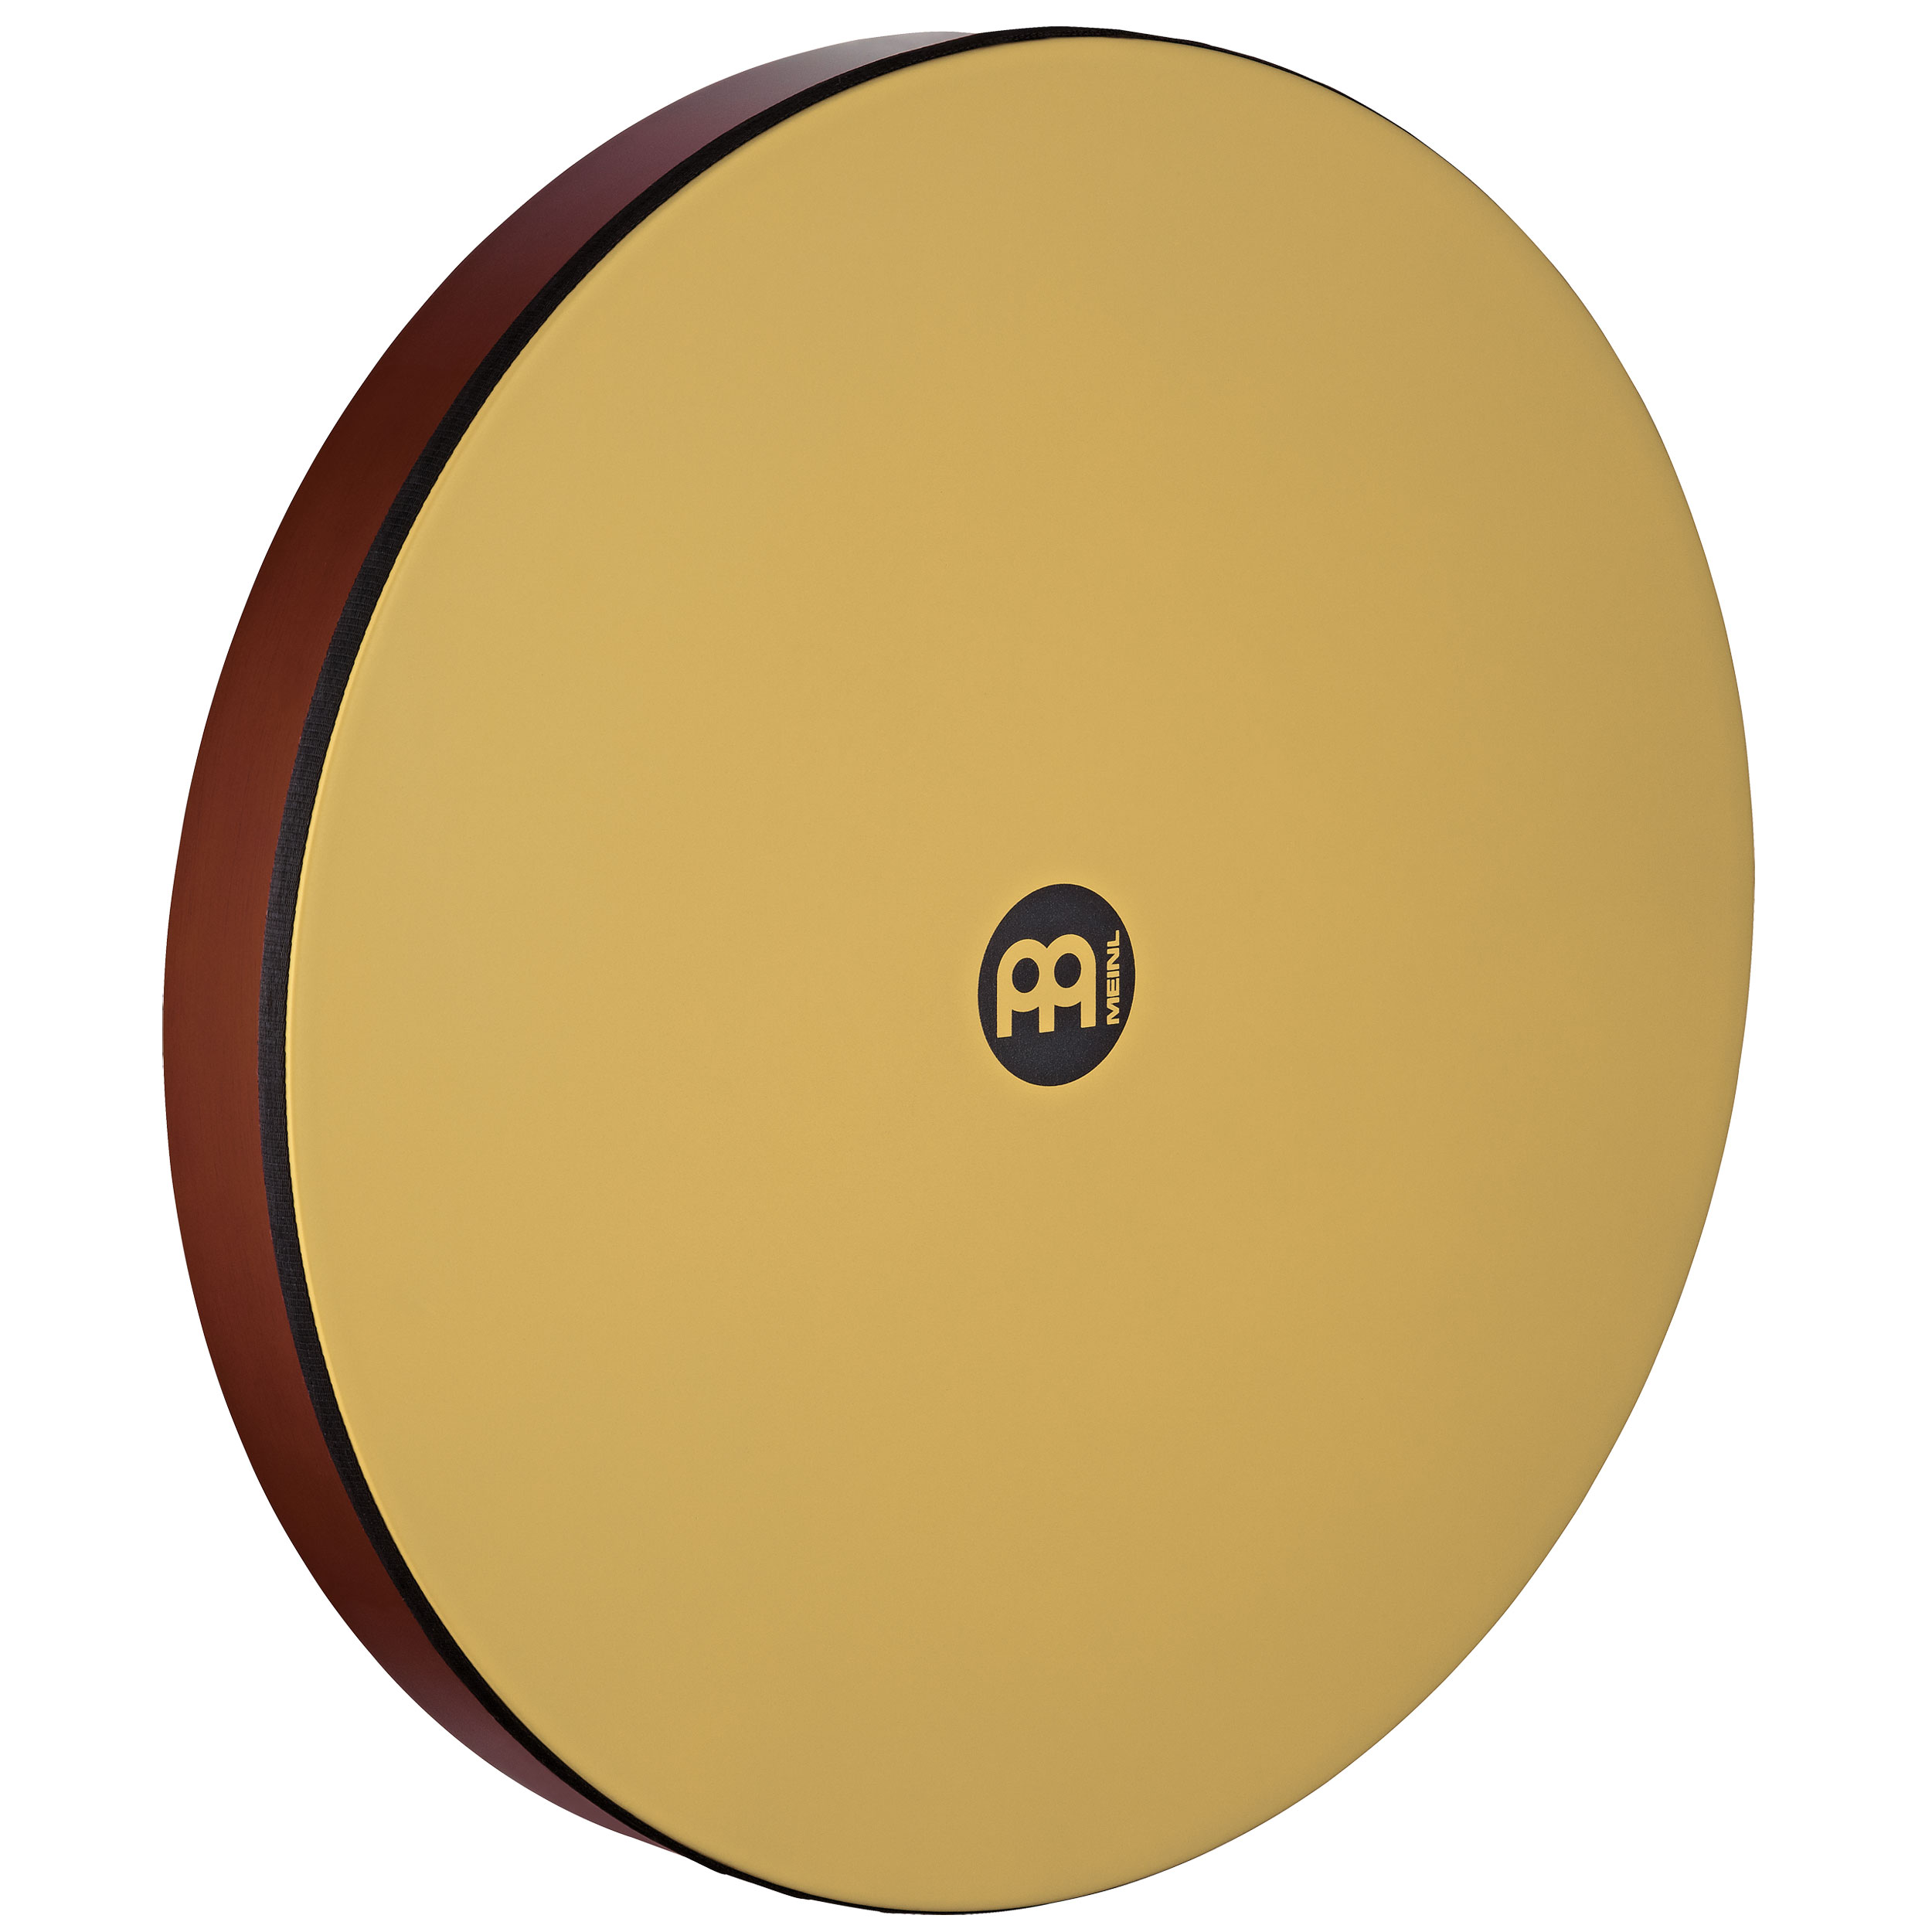 """Meinl 20"""" x 2.75"""" Hand Drum with Synthetic Head in African Brown Finish"""